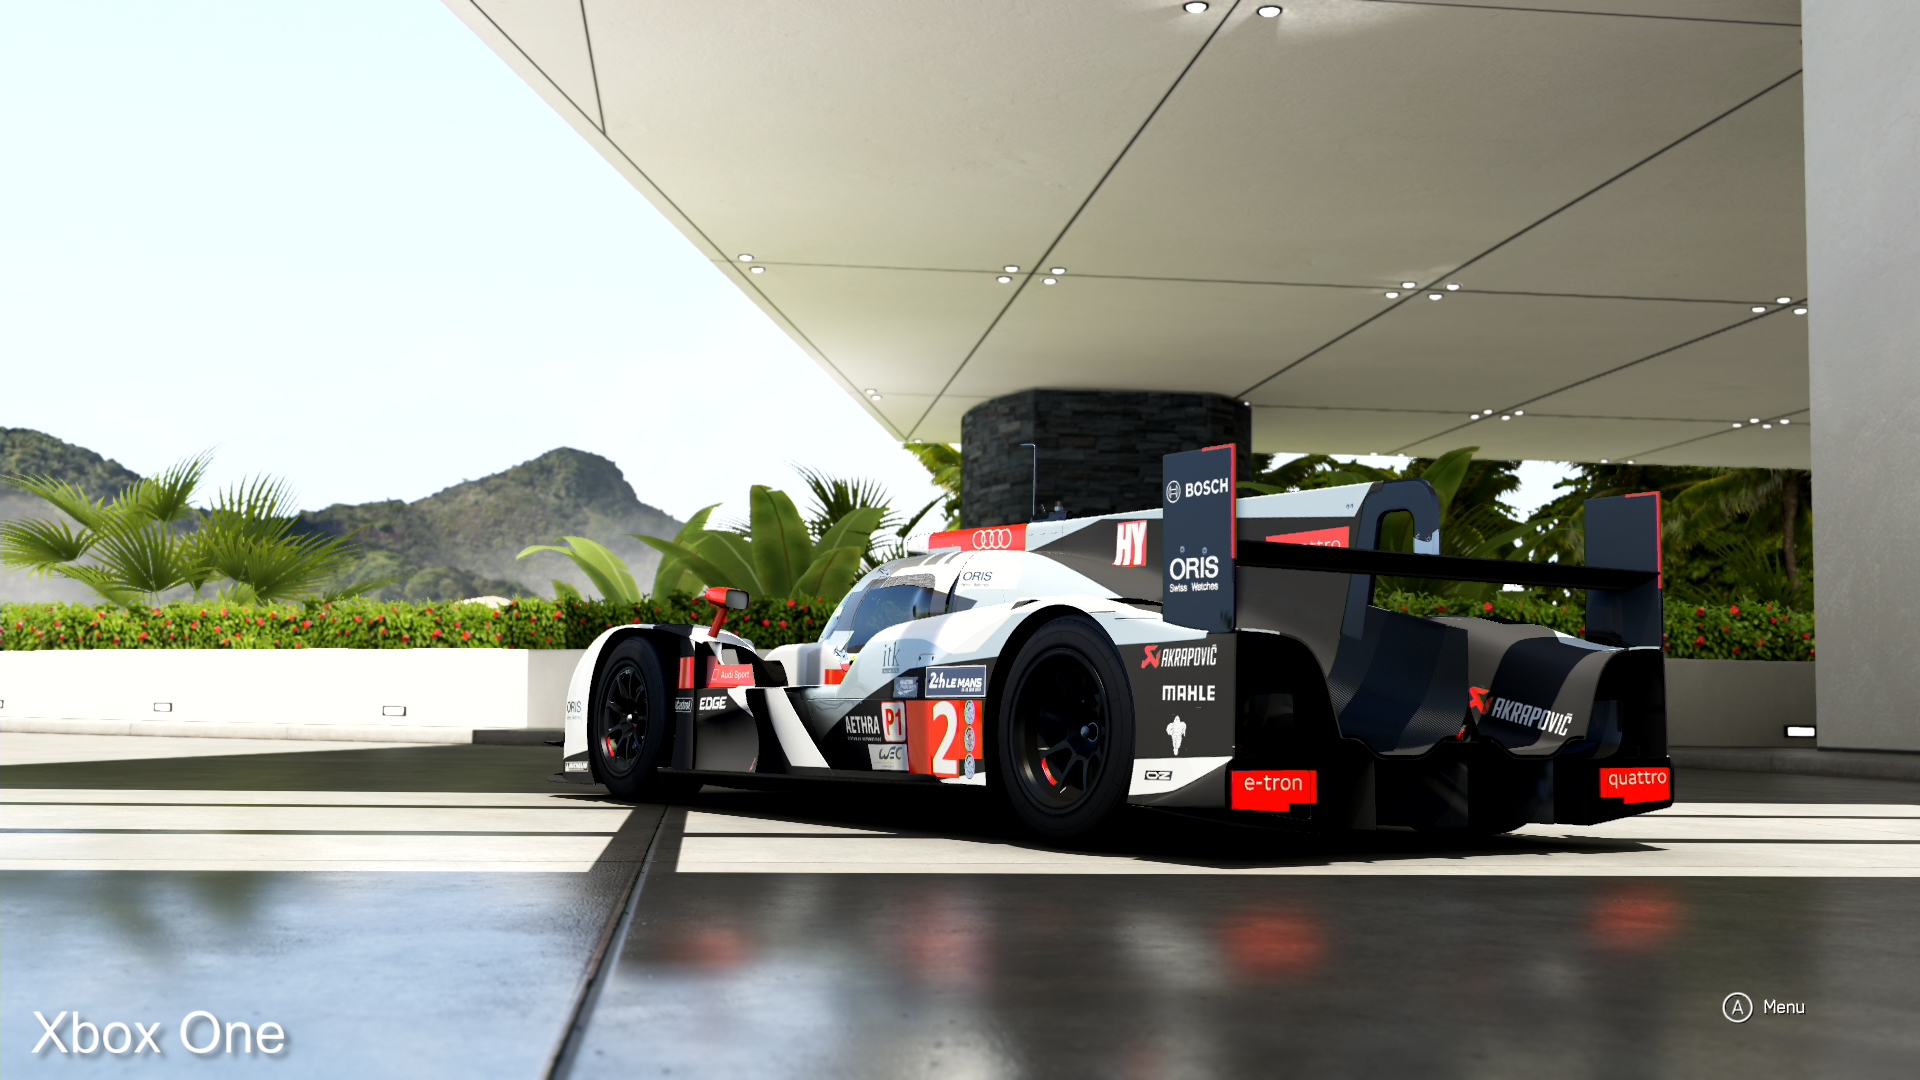 Face Off Forza Motorsport 6 Apex On Pc 36 Volt Club Car Wiring Diagram 48 Trolling Motor Motorport Takes An Already Great Looking Game Xbox One And Enhances It The Exhibition Room Shows Model Detail Is A Match